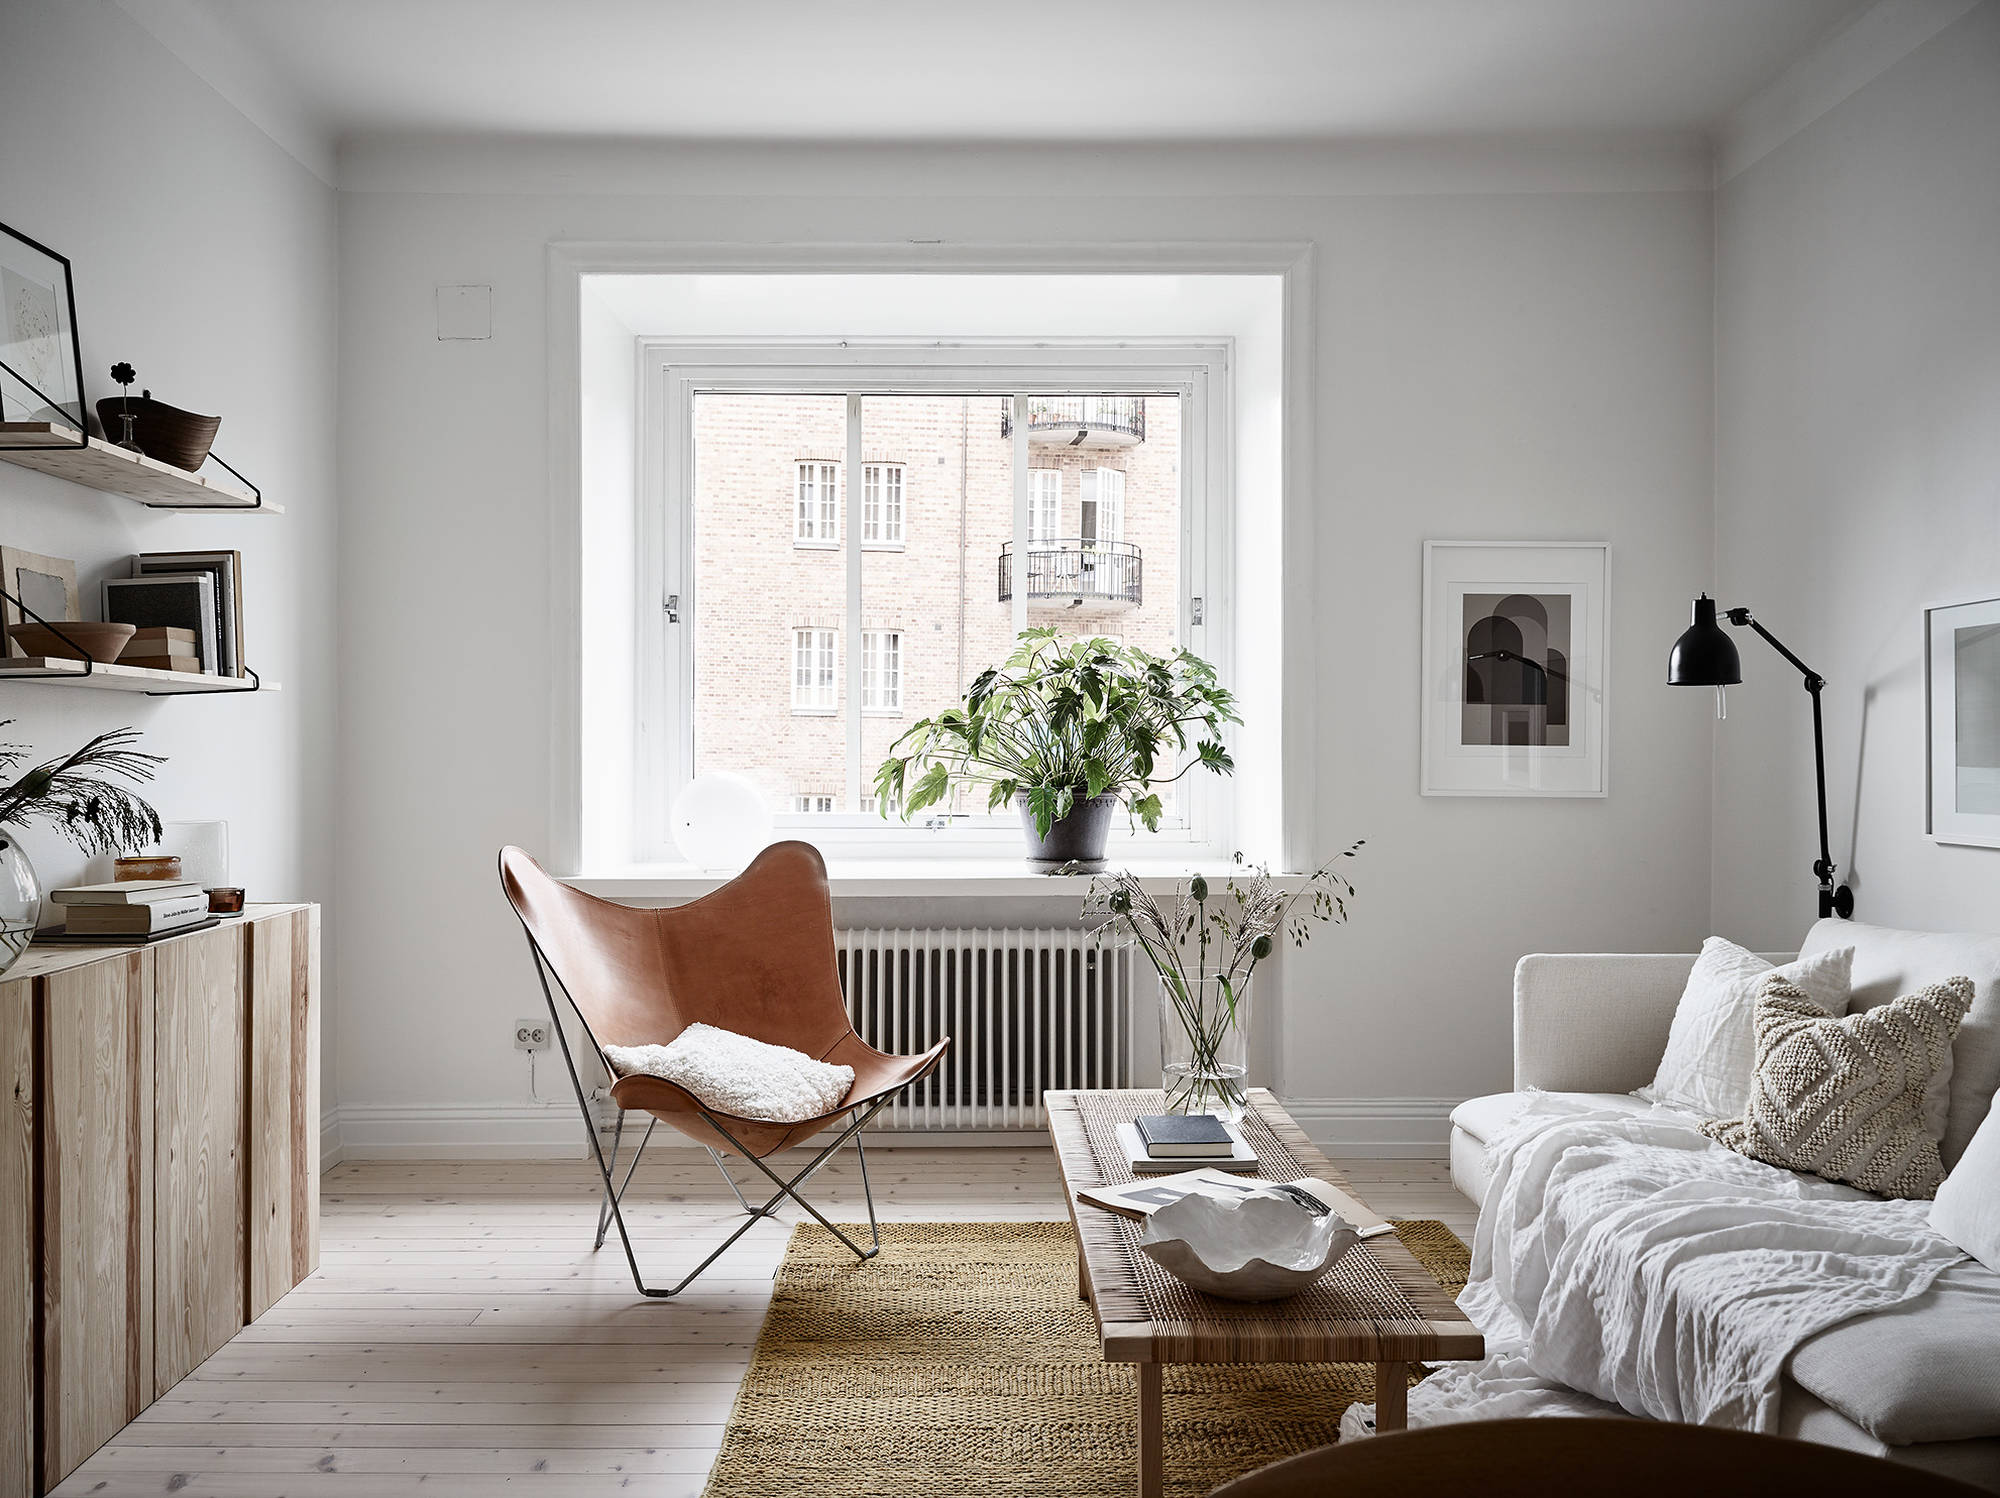 Beautiful home with warm colors - COCO LAPINE DESIGNCOCO LAPINE DESIGN